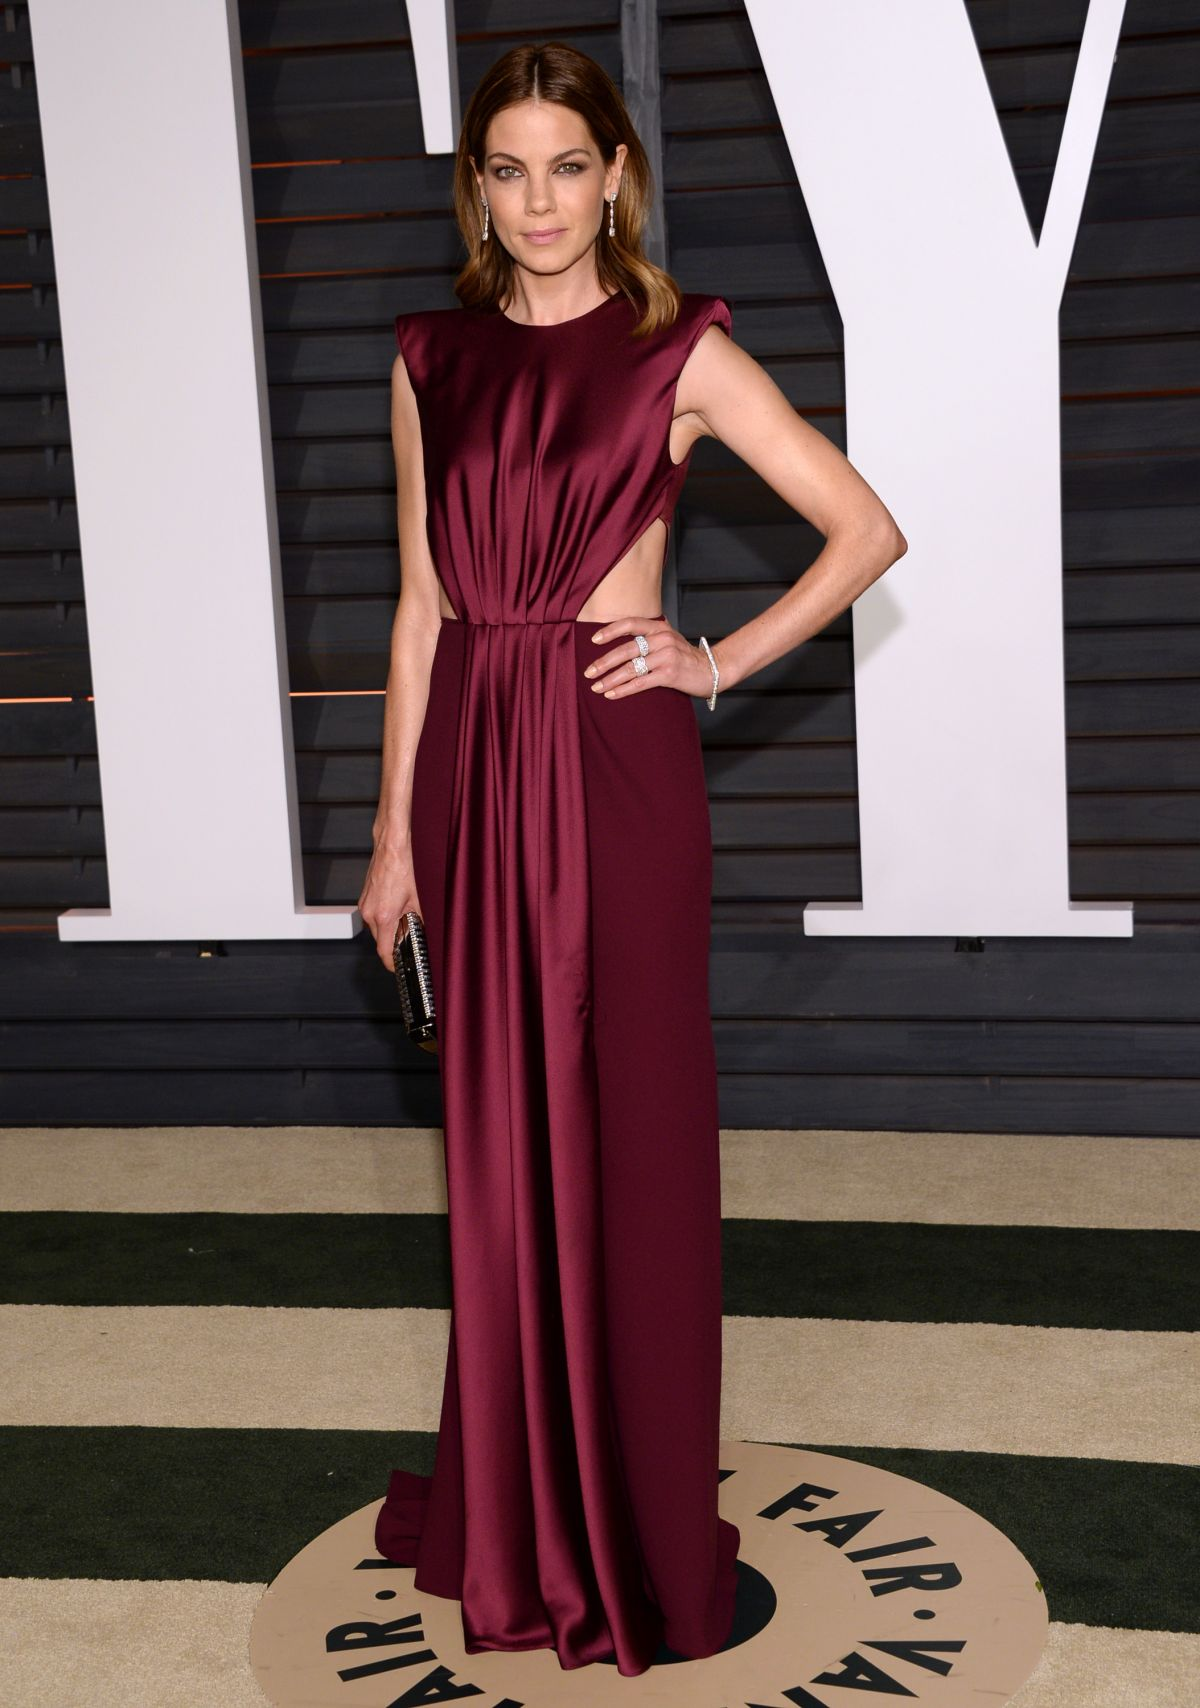 MICHELLE MONAGHAN at Vanity Fair Oscar Party in Hollywood